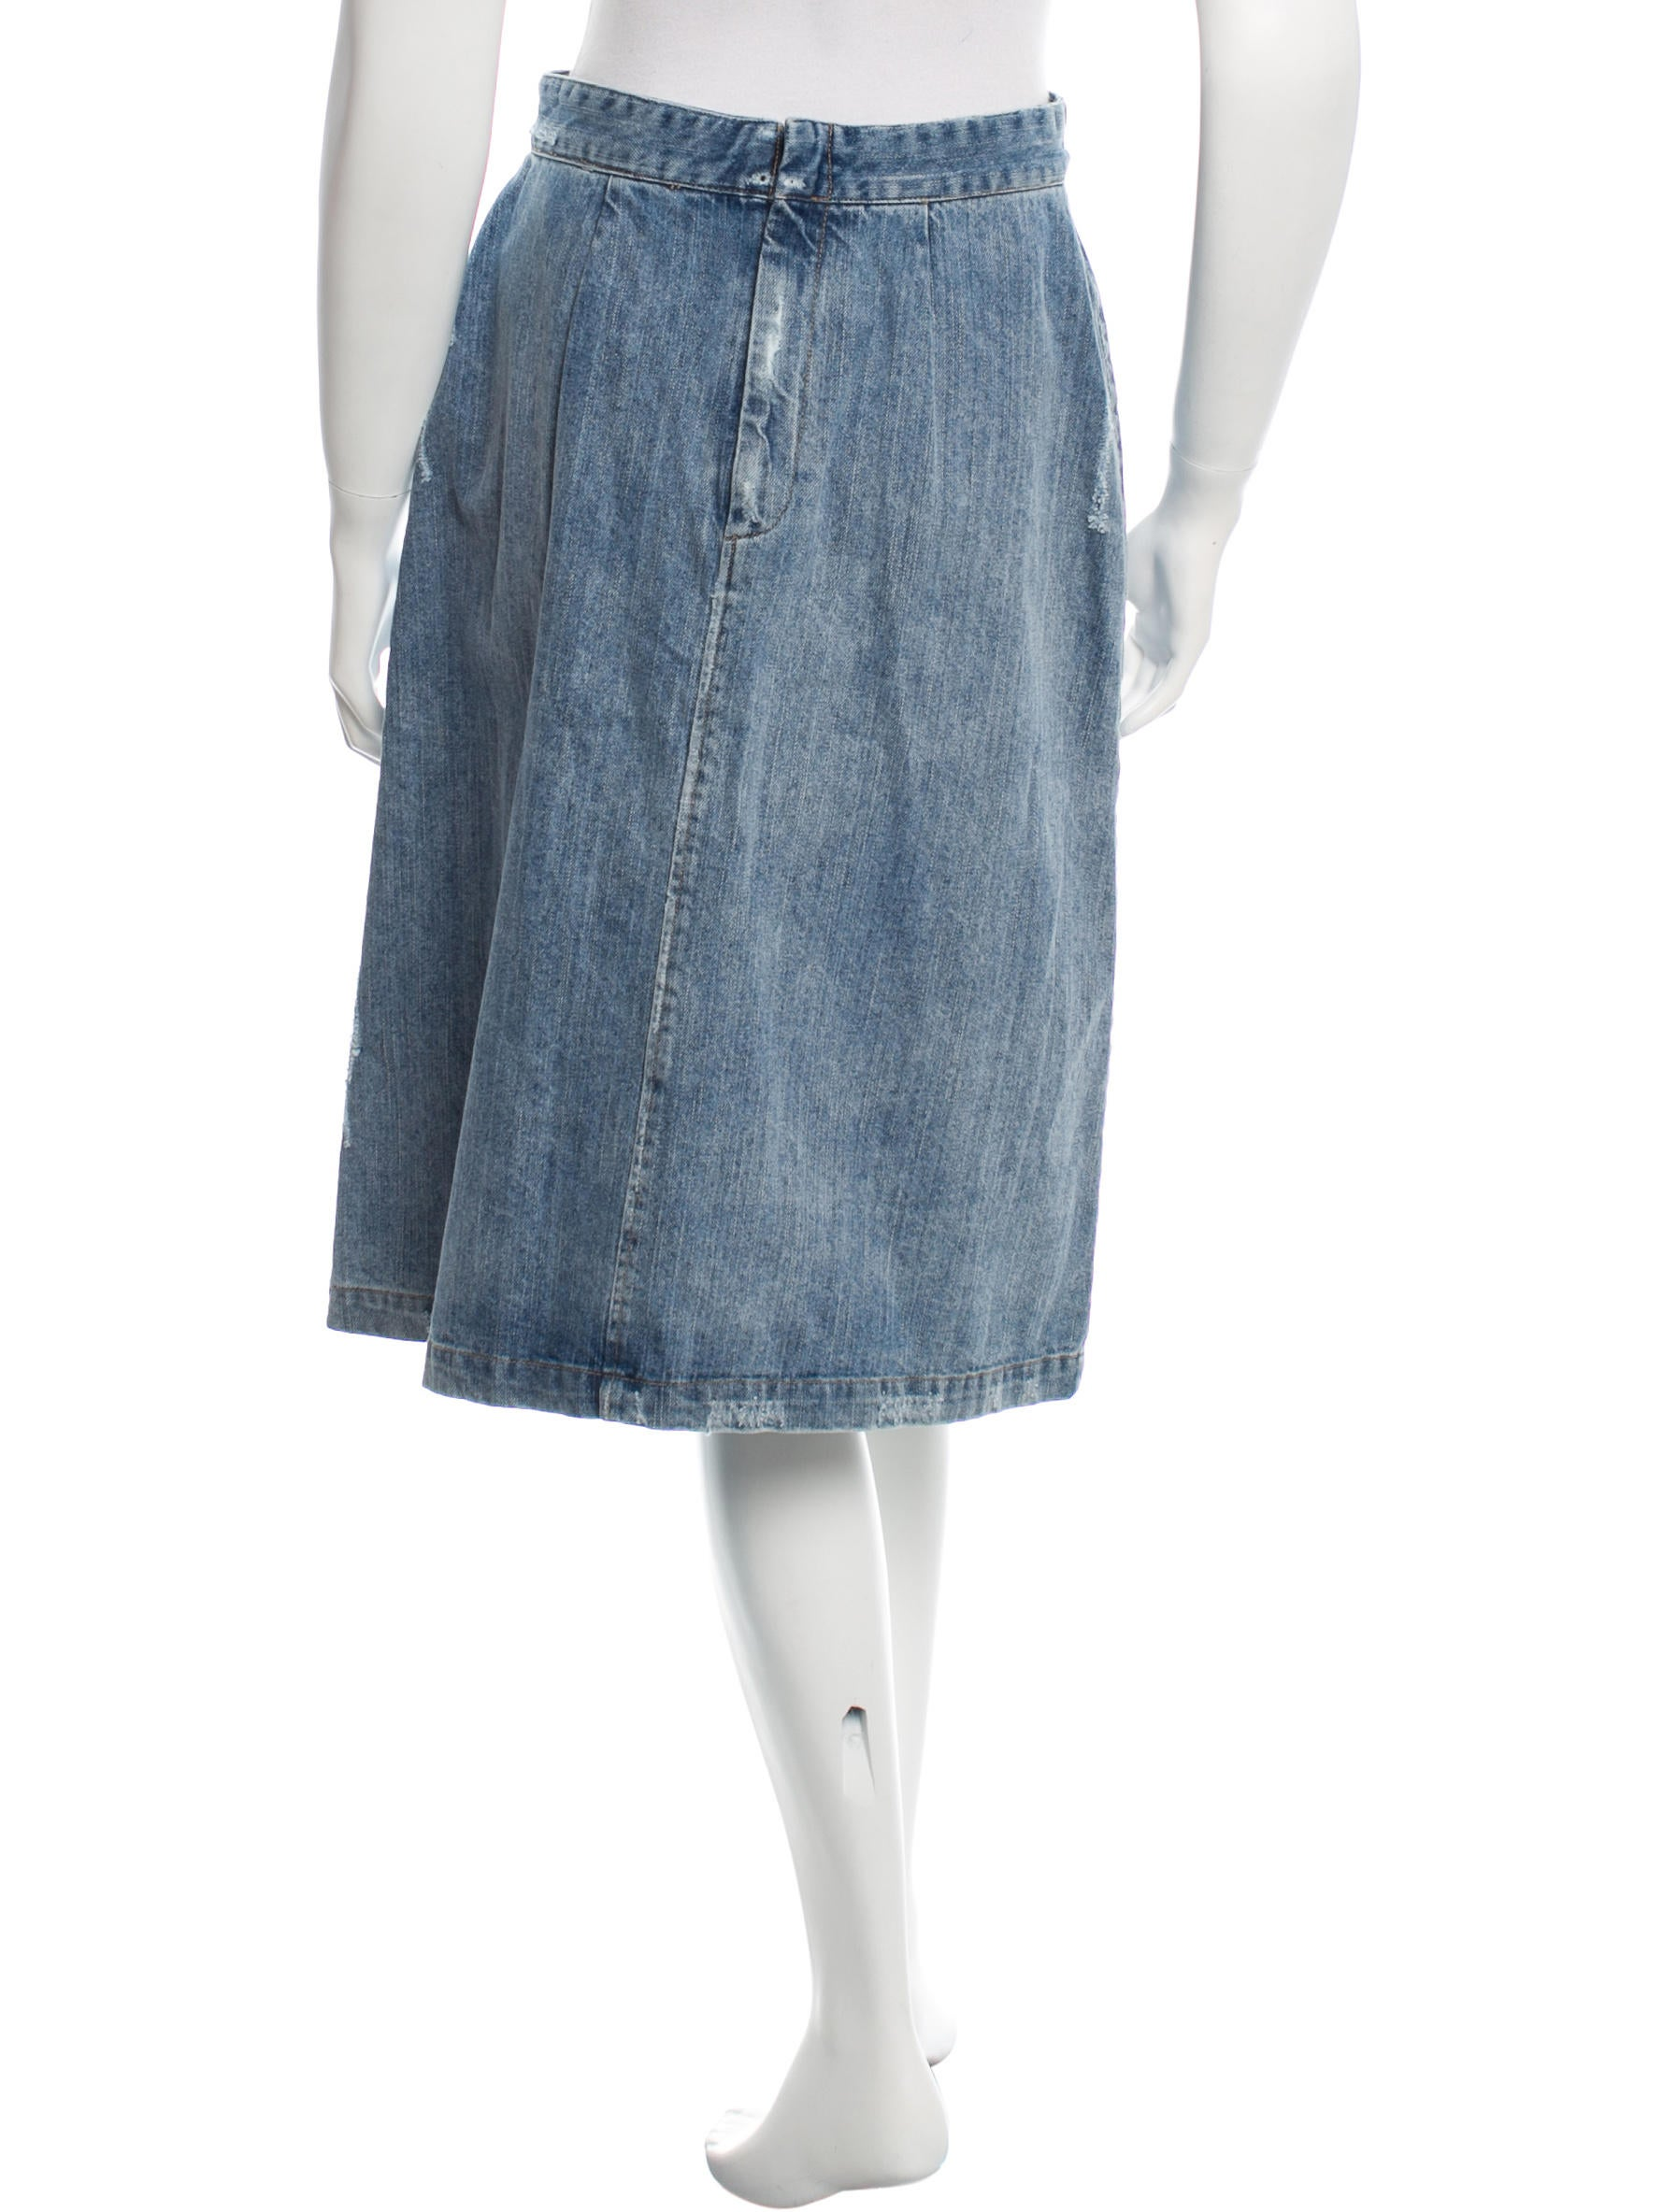 sea lace up denim skirt w tags clothing wssea21406